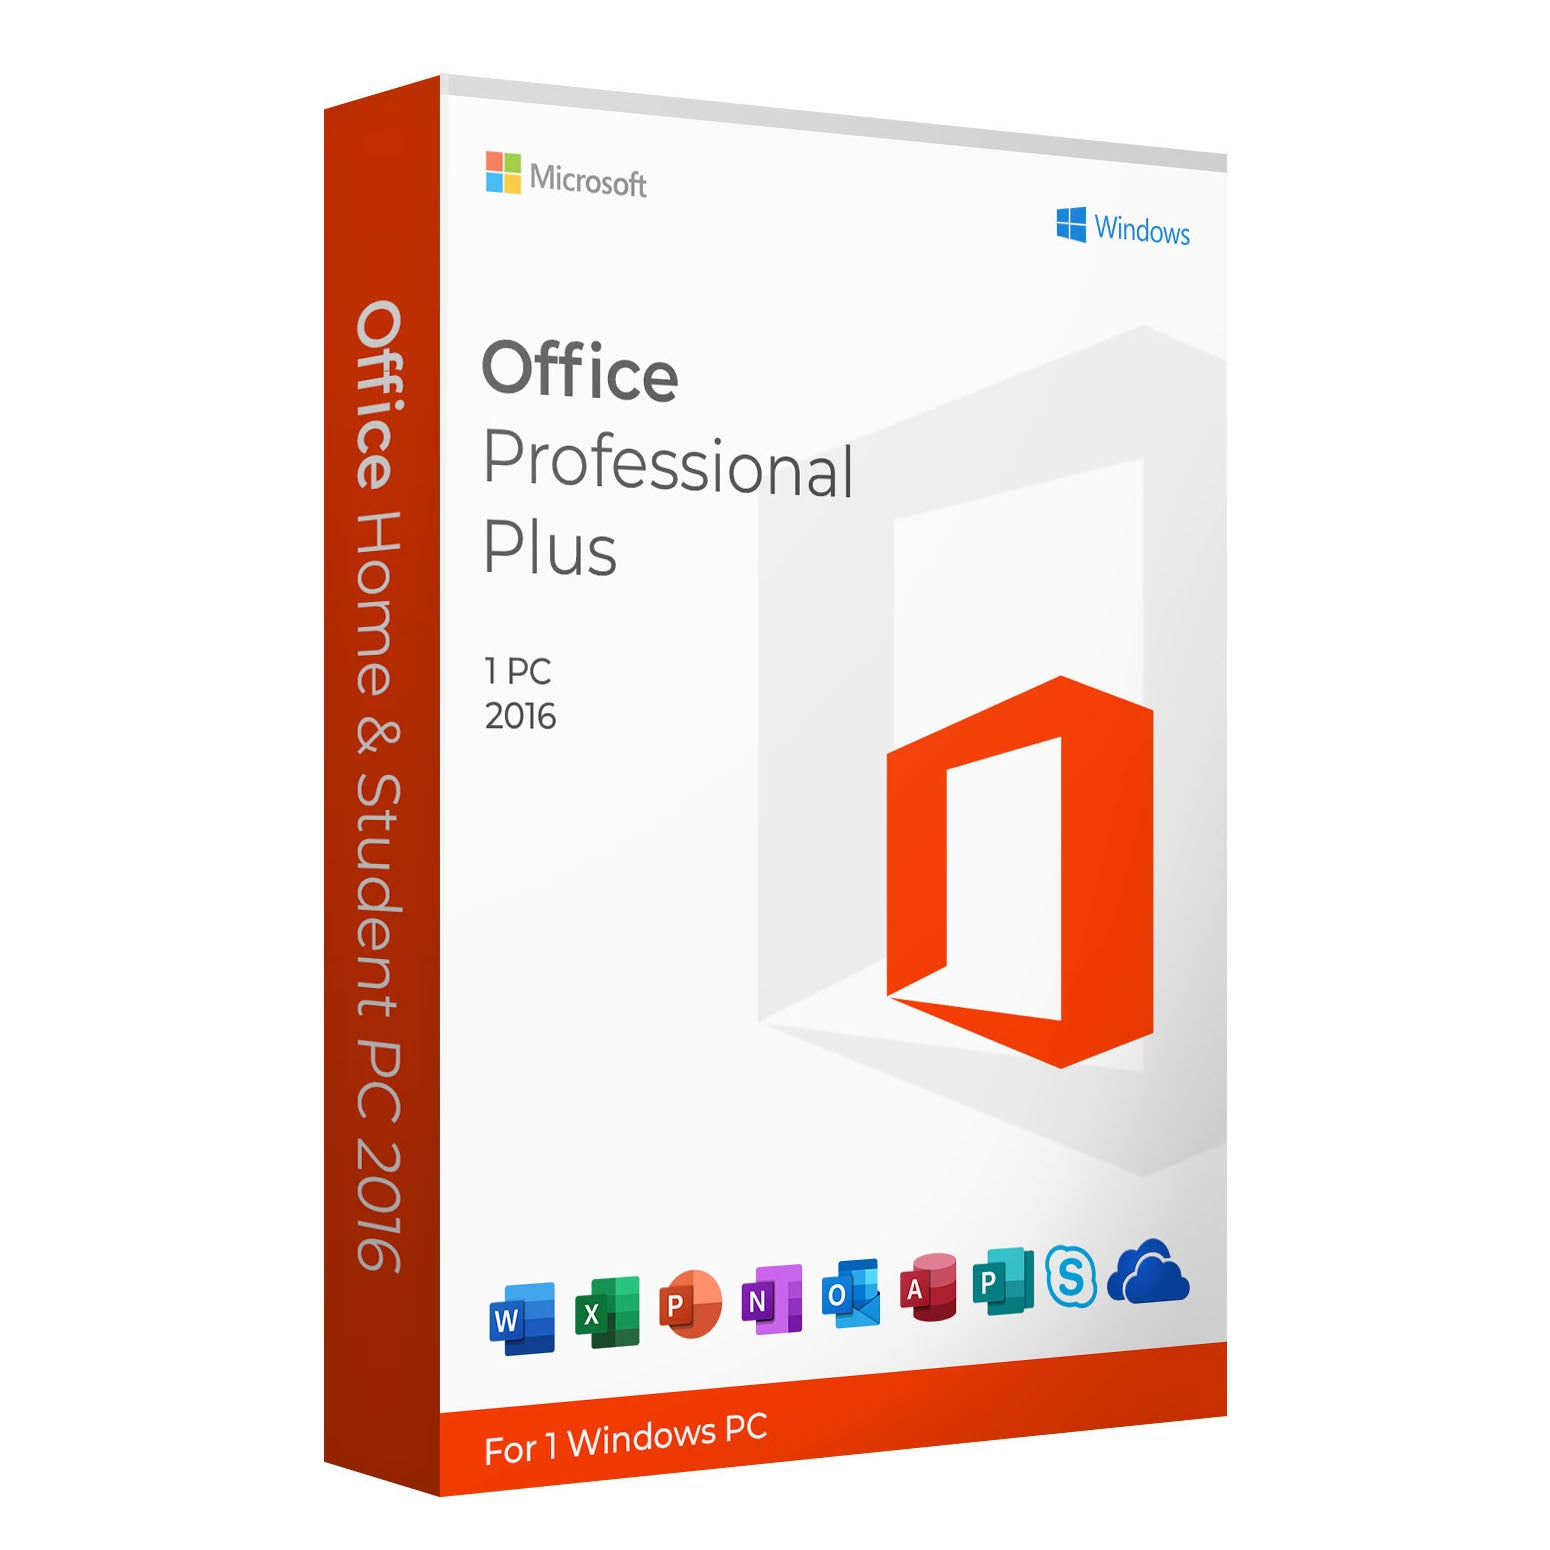 Office 2016 Professional Plus for Windows PC